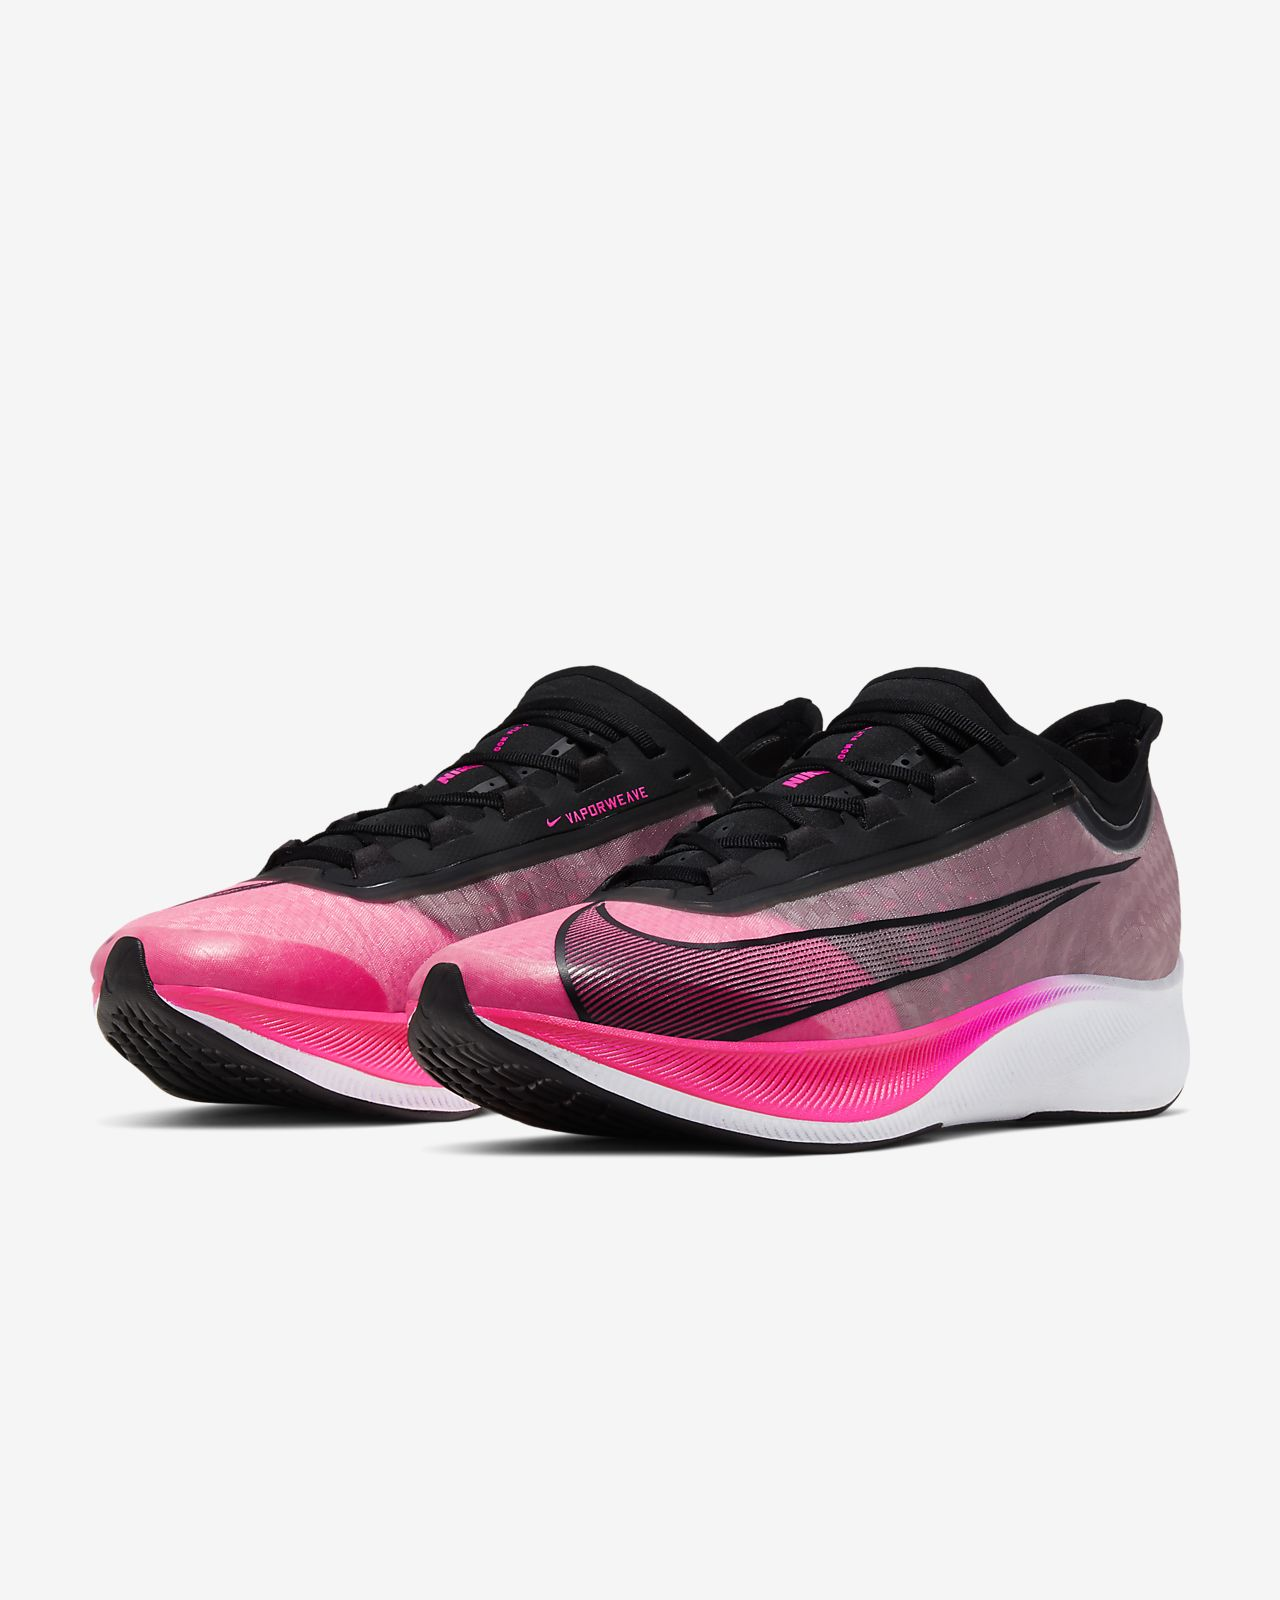 Nike Zoom Fly 3 Men's Running Shoe